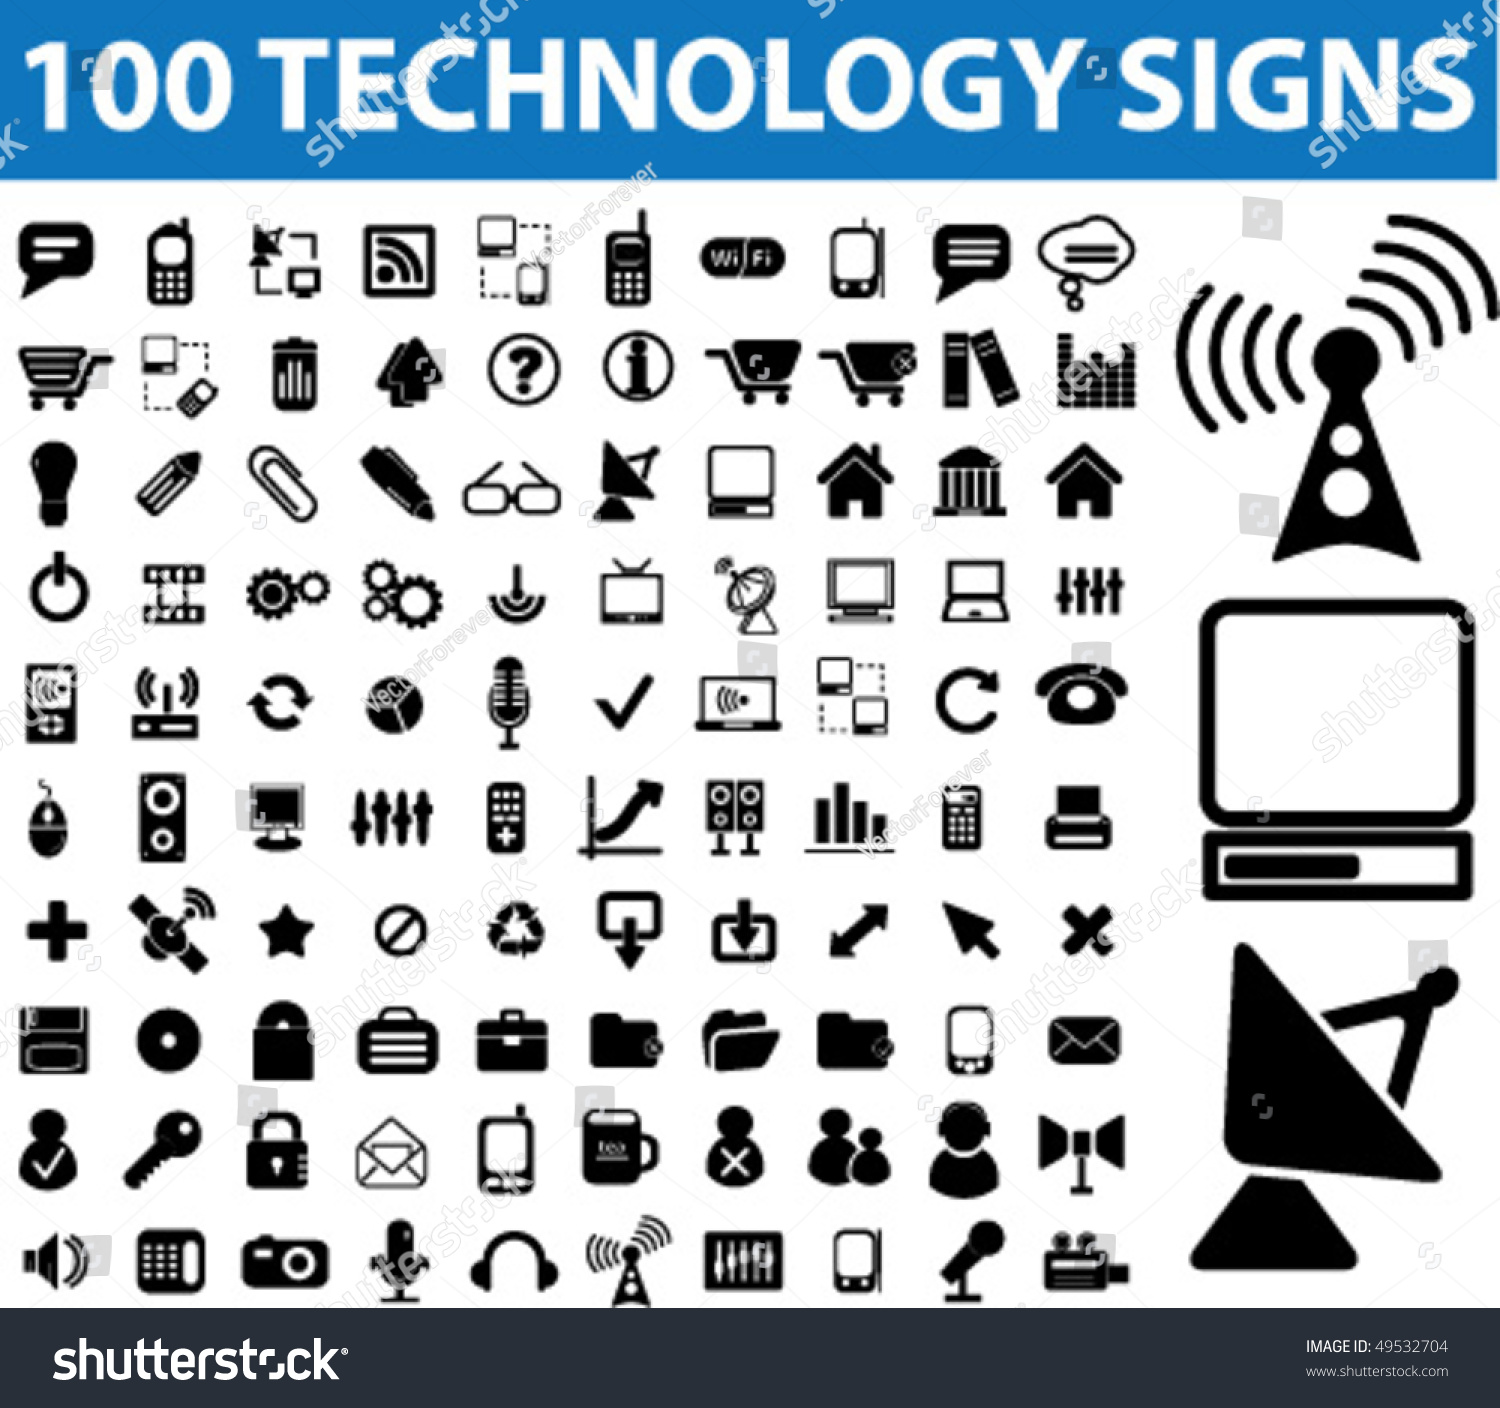 technology signs vector shutterstock remote control icon